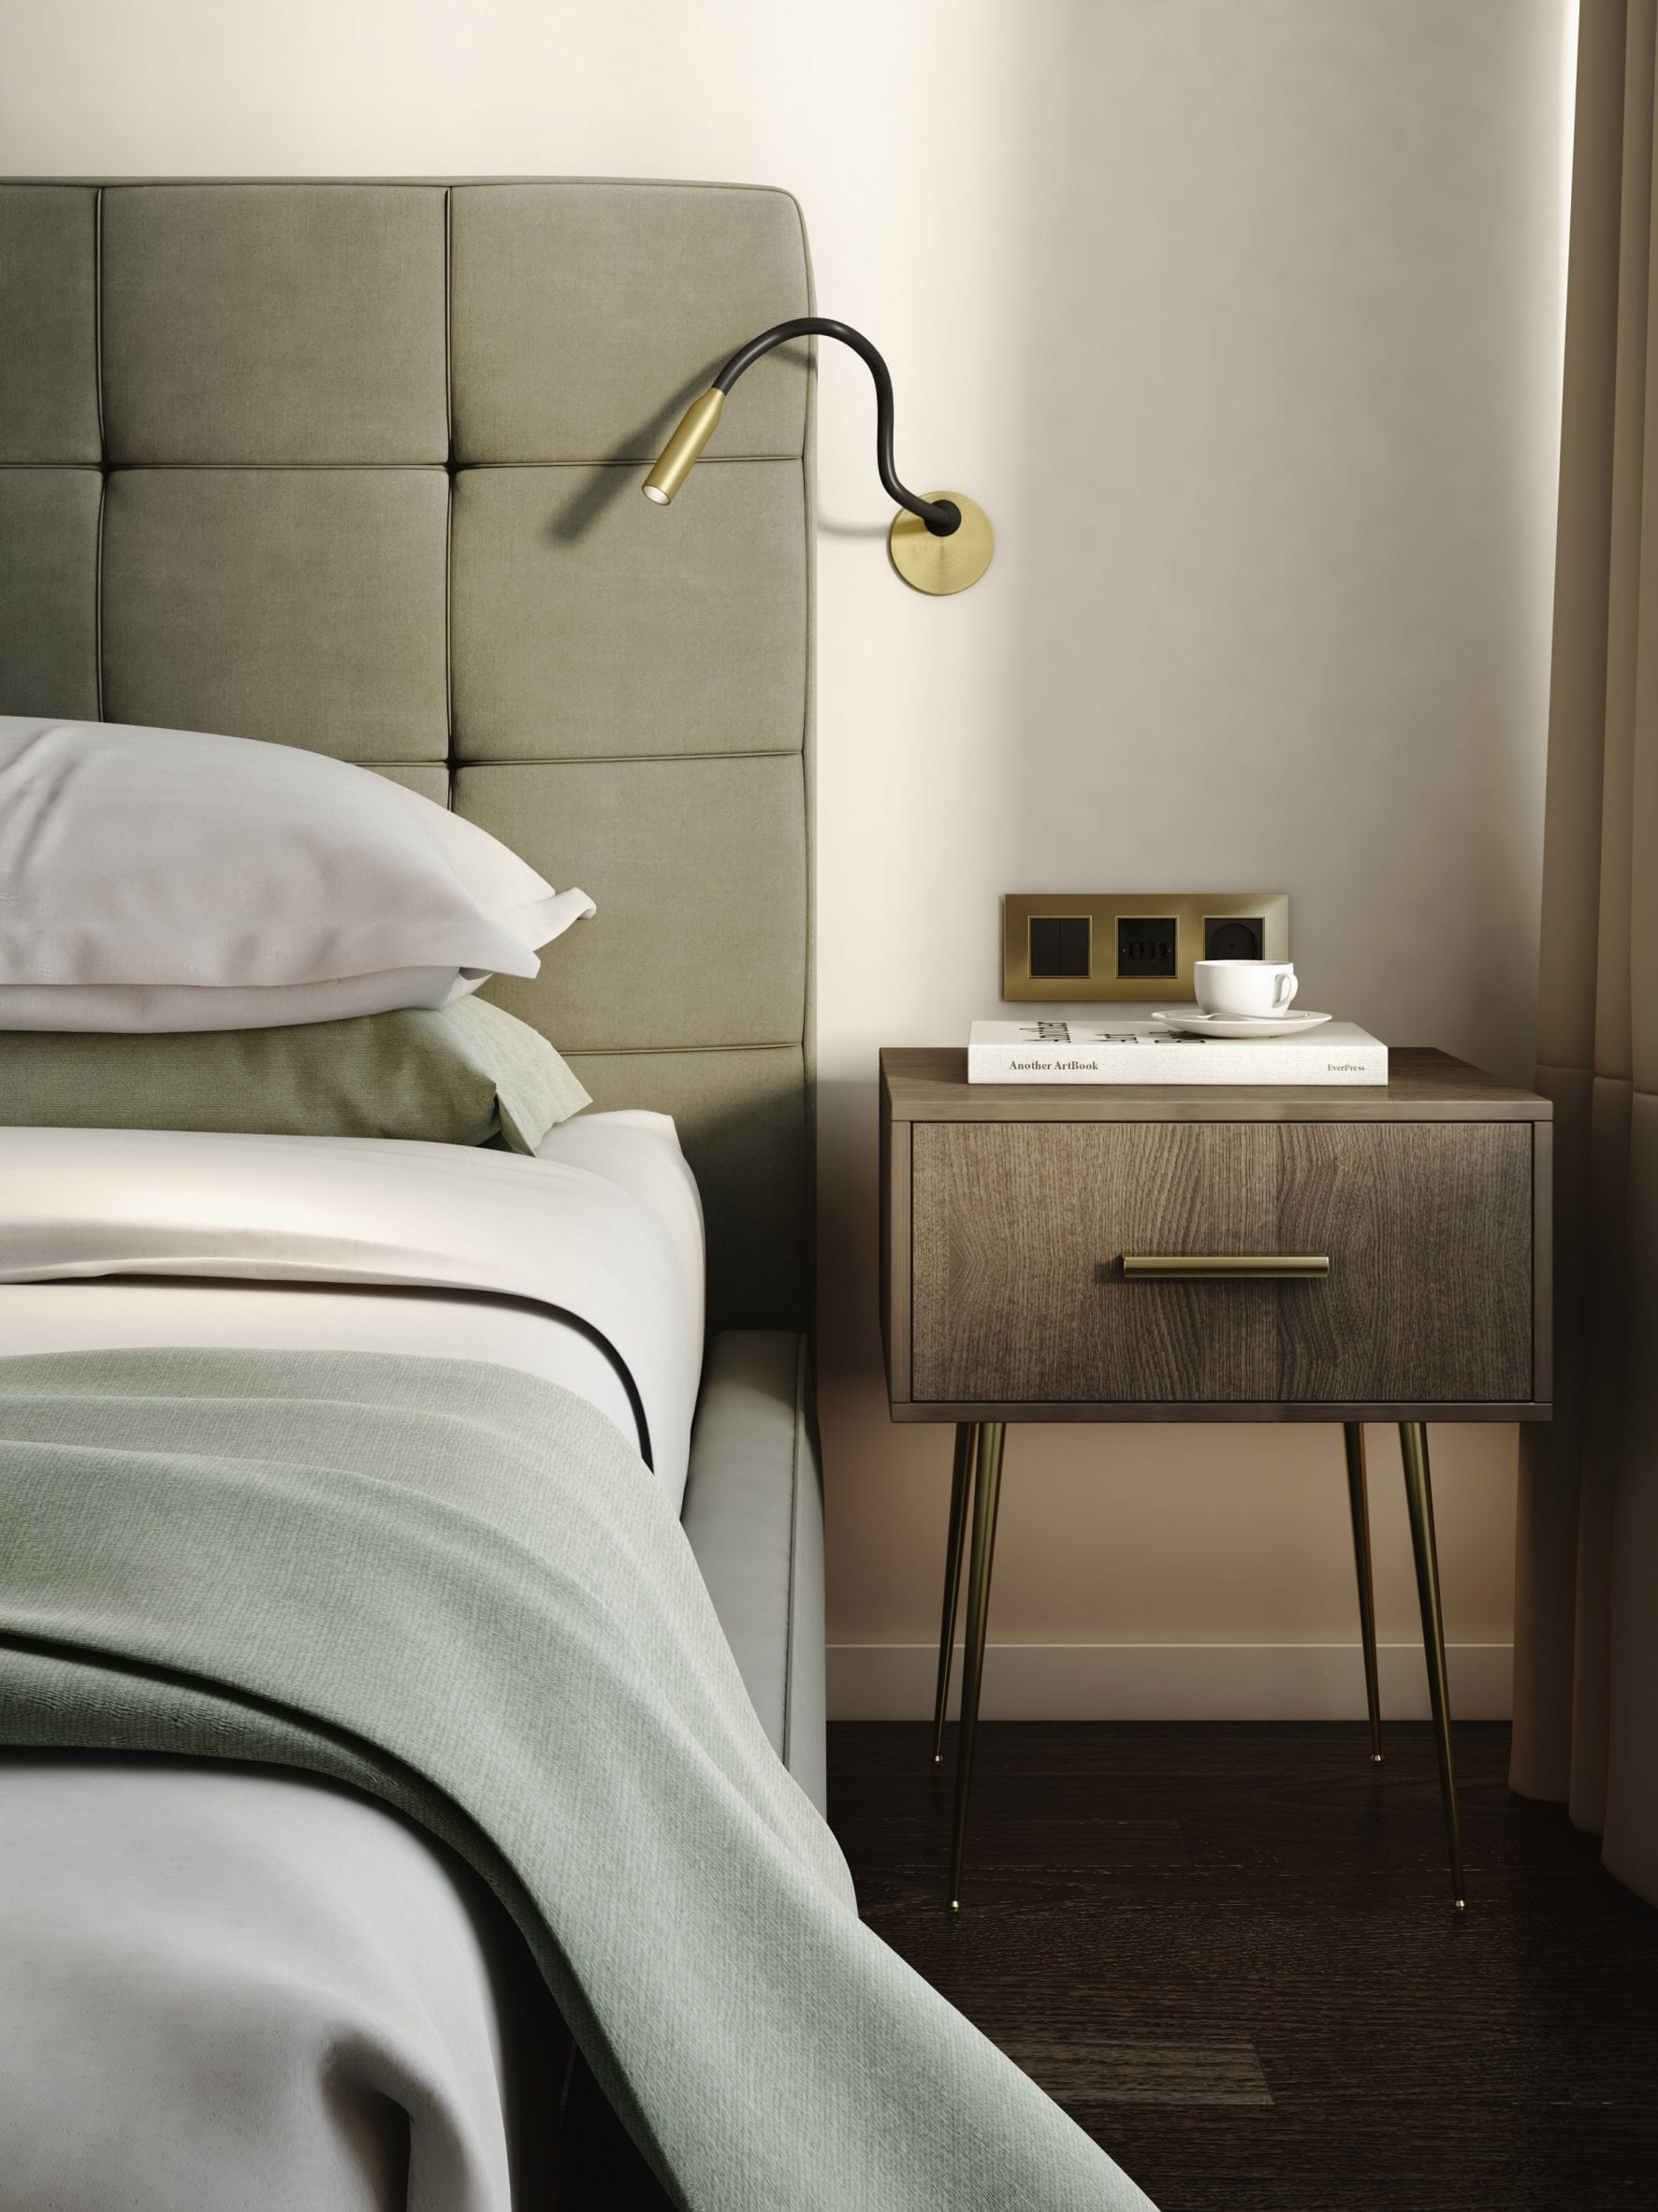 Lucca reading light by Astro Lighting mounted to a wall perched next to a bed